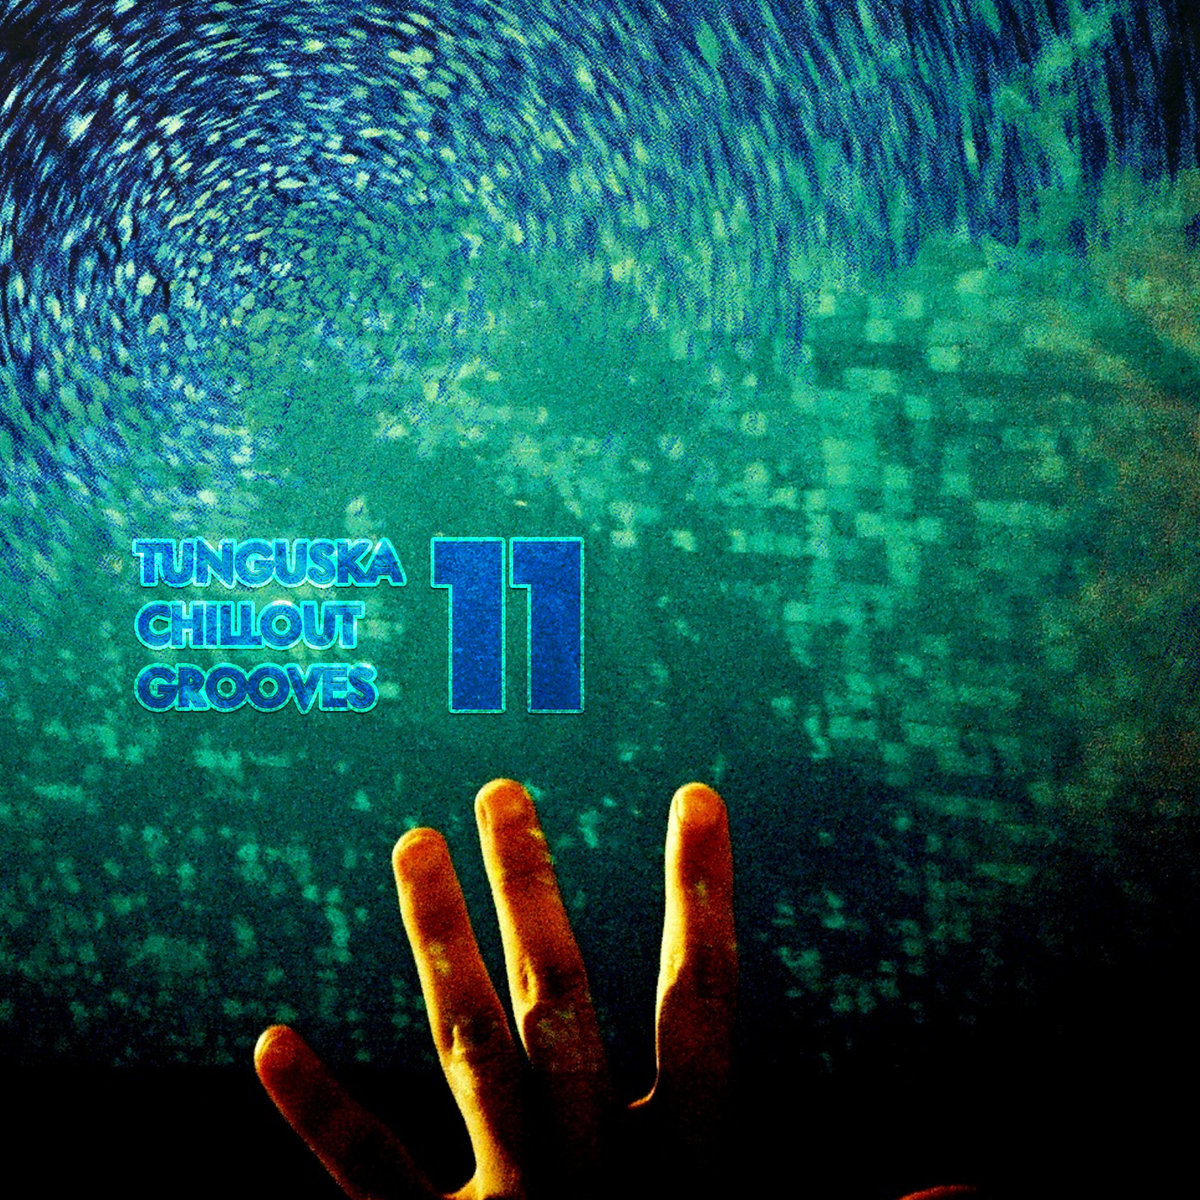 Desperate Mars - Acceptance of Charged Particles @ 'Tunguska Chillout Grooves - Volume 11' album (electronic, ambient)